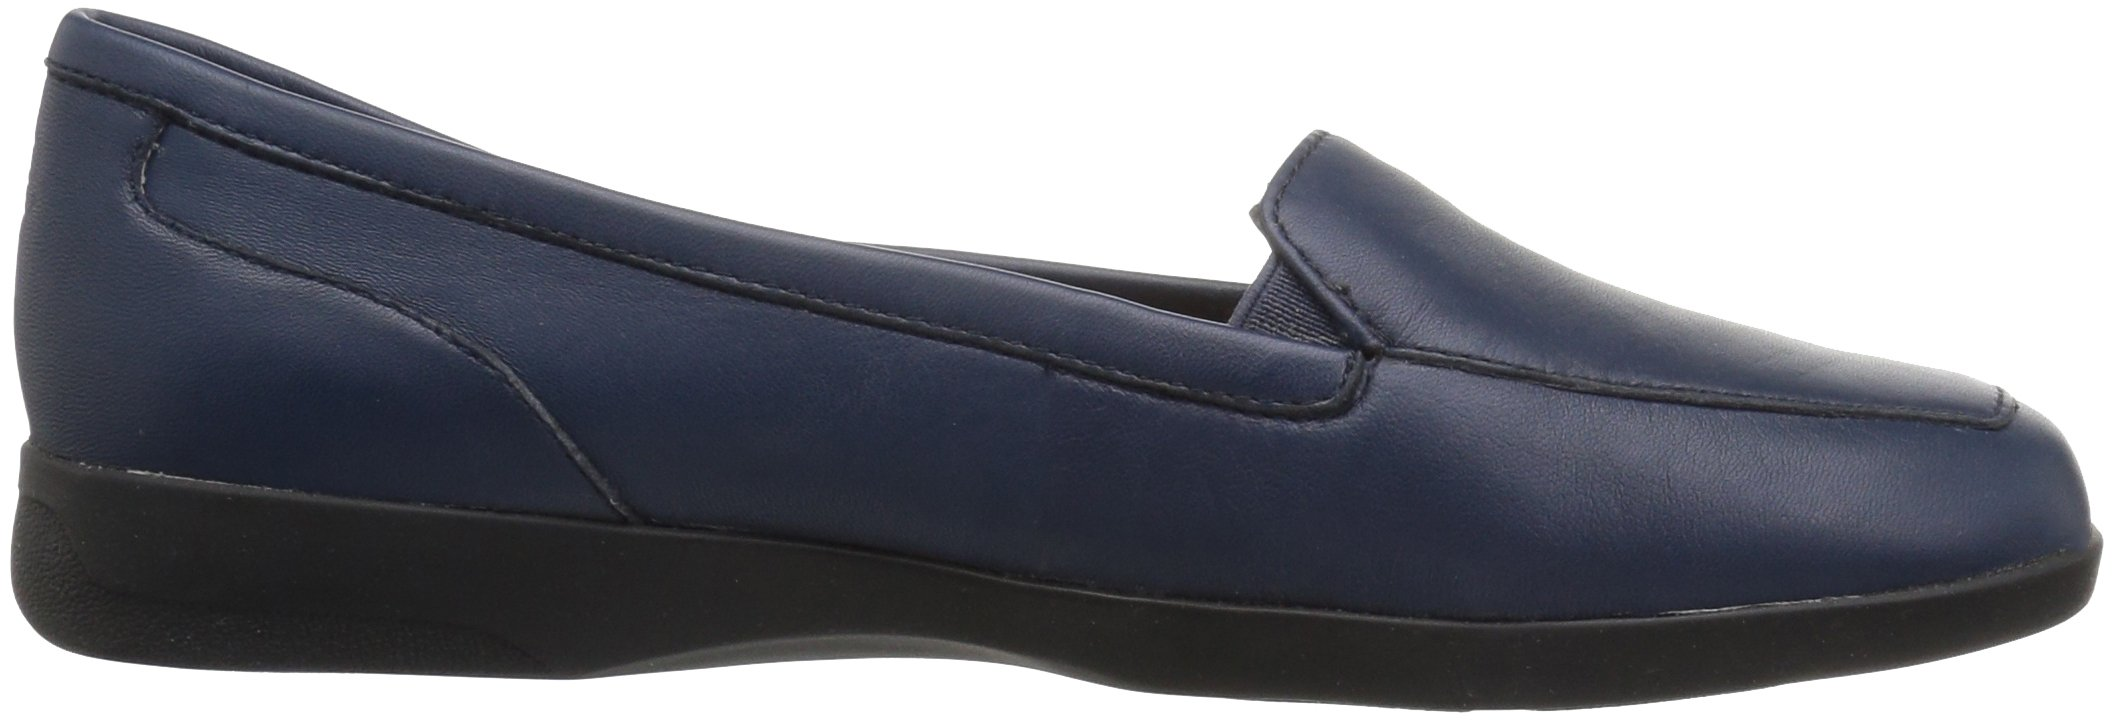 Easy Spirit Women's Devitt Oxford Flat, Blue, 5 M US by Easy Spirit (Image #7)